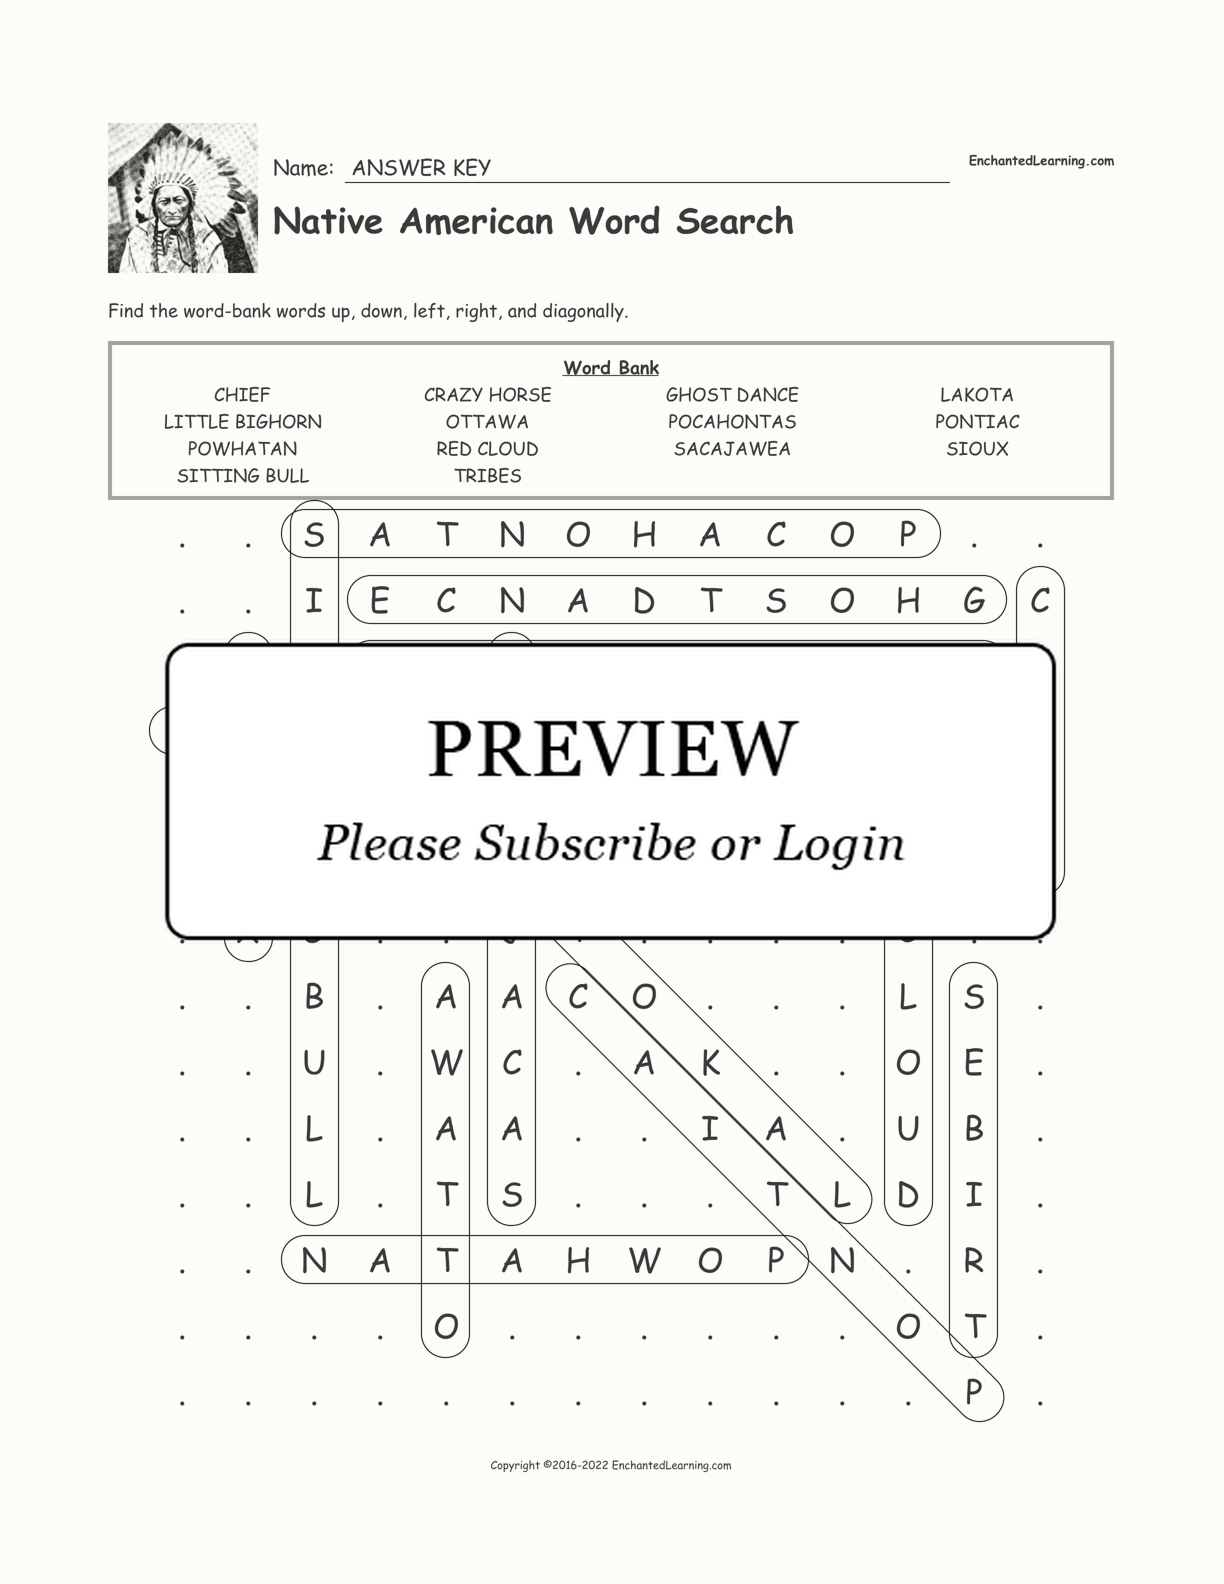 Native American Word Search